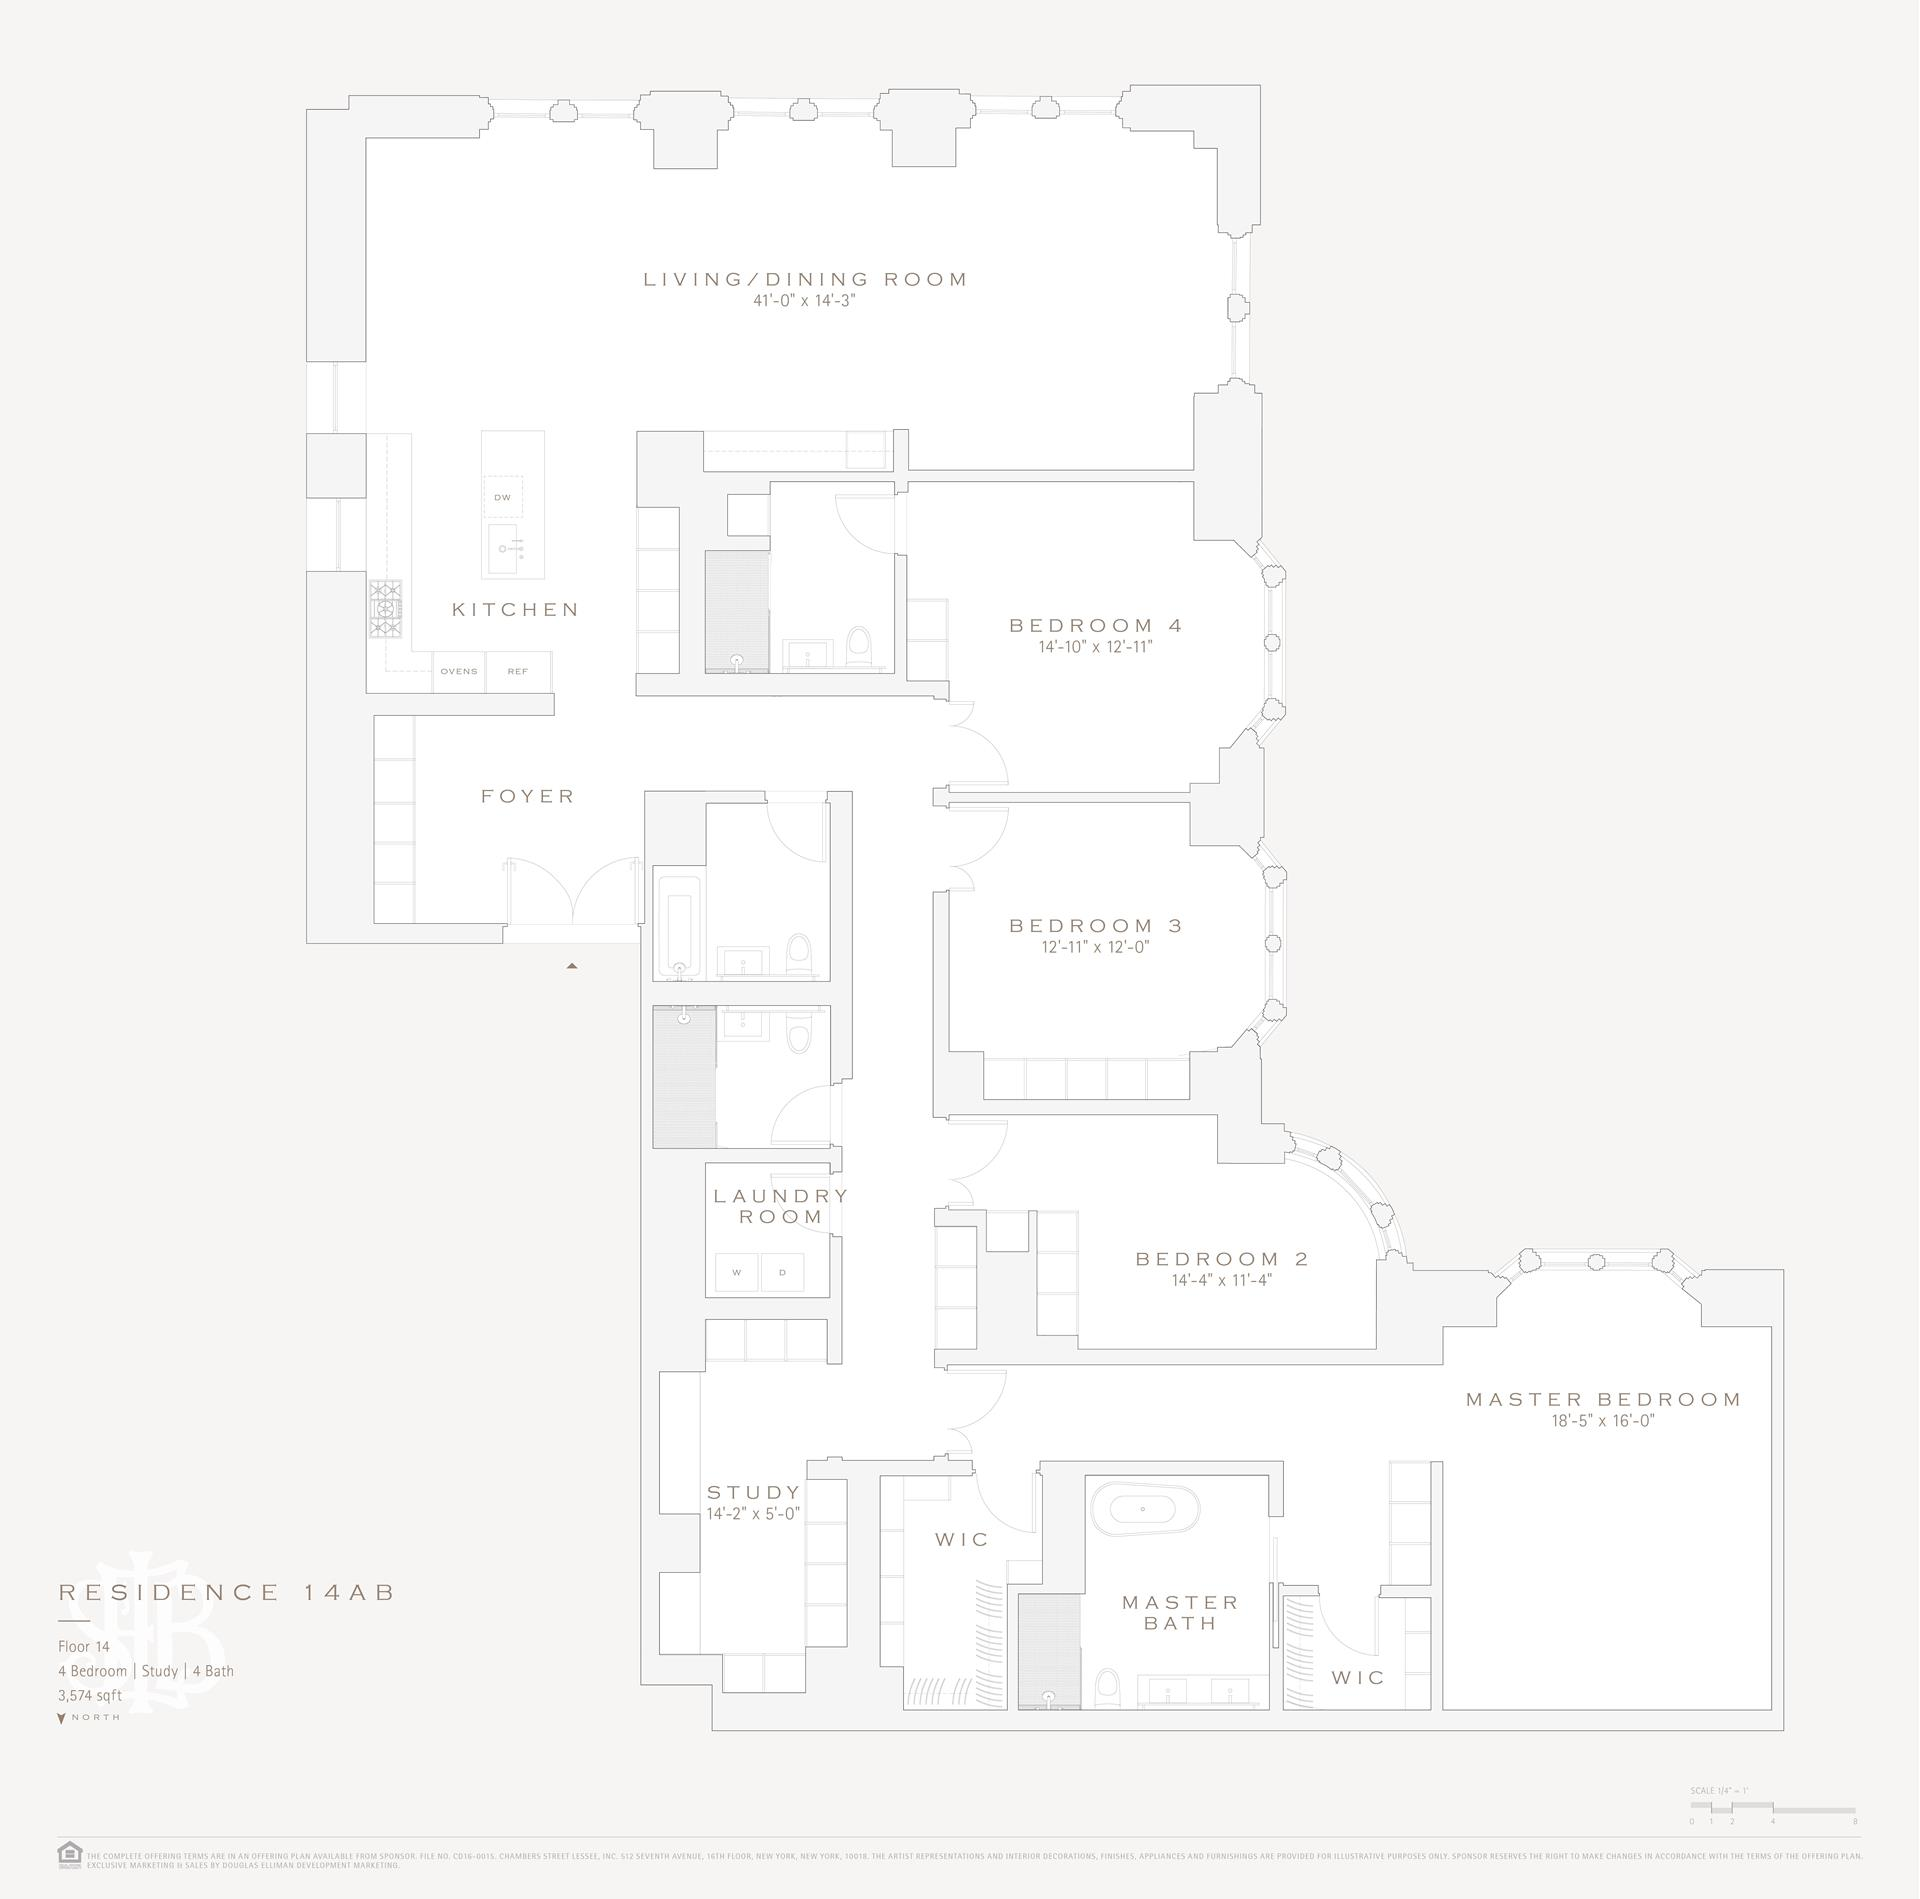 Floor plan of 49 Chambers St, 14AB - TriBeCa, New York